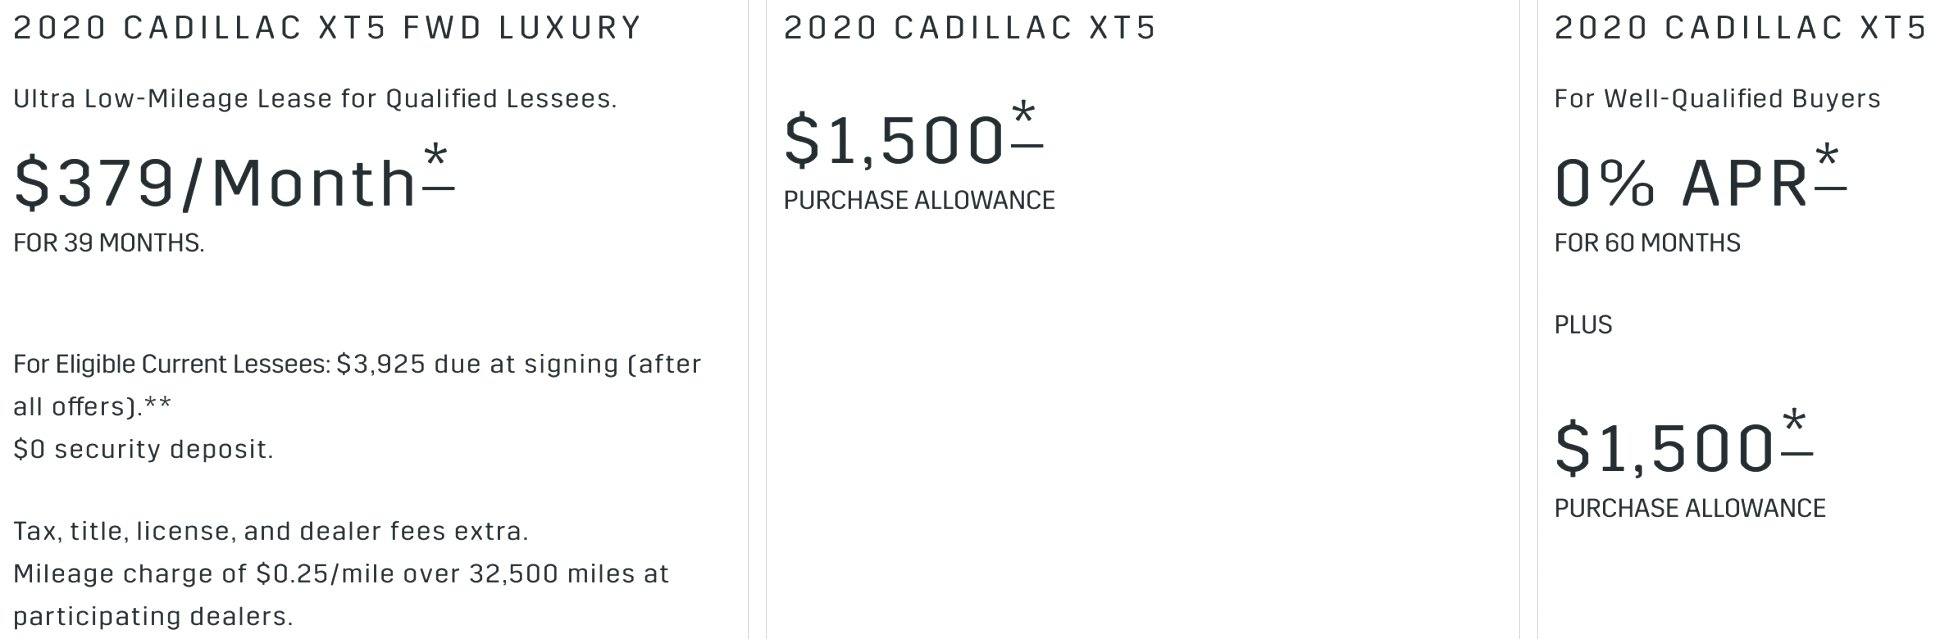 2020 cadillac incentives Release Date